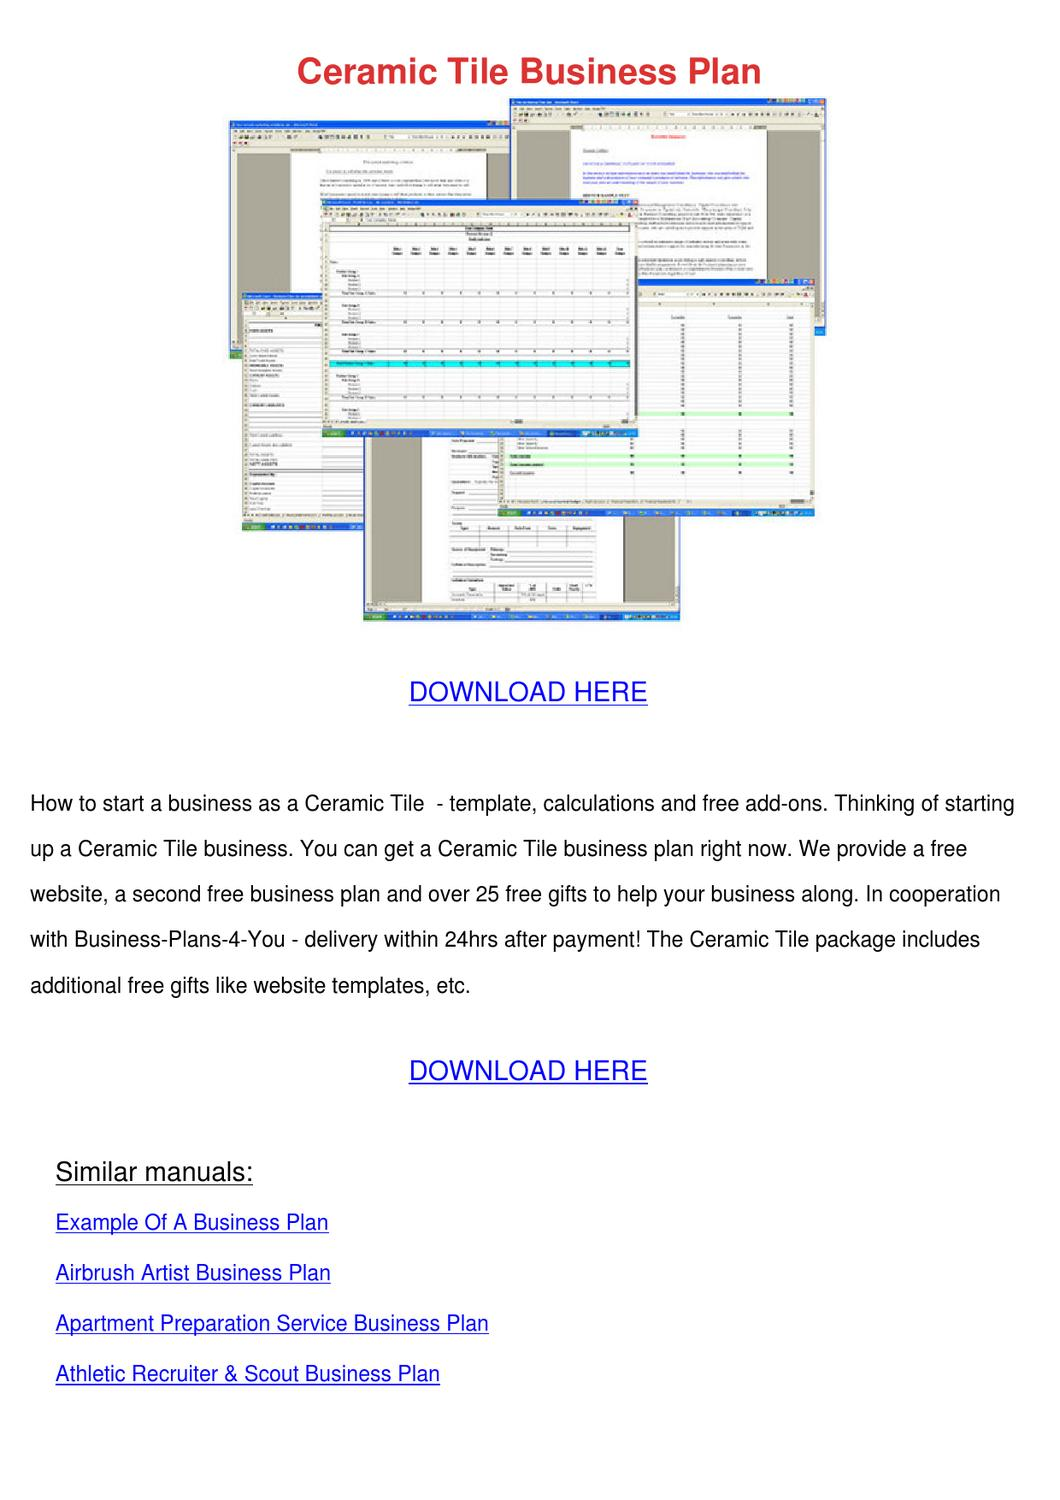 Ceramic Tile Business Plan by Alex Selmer - issuu